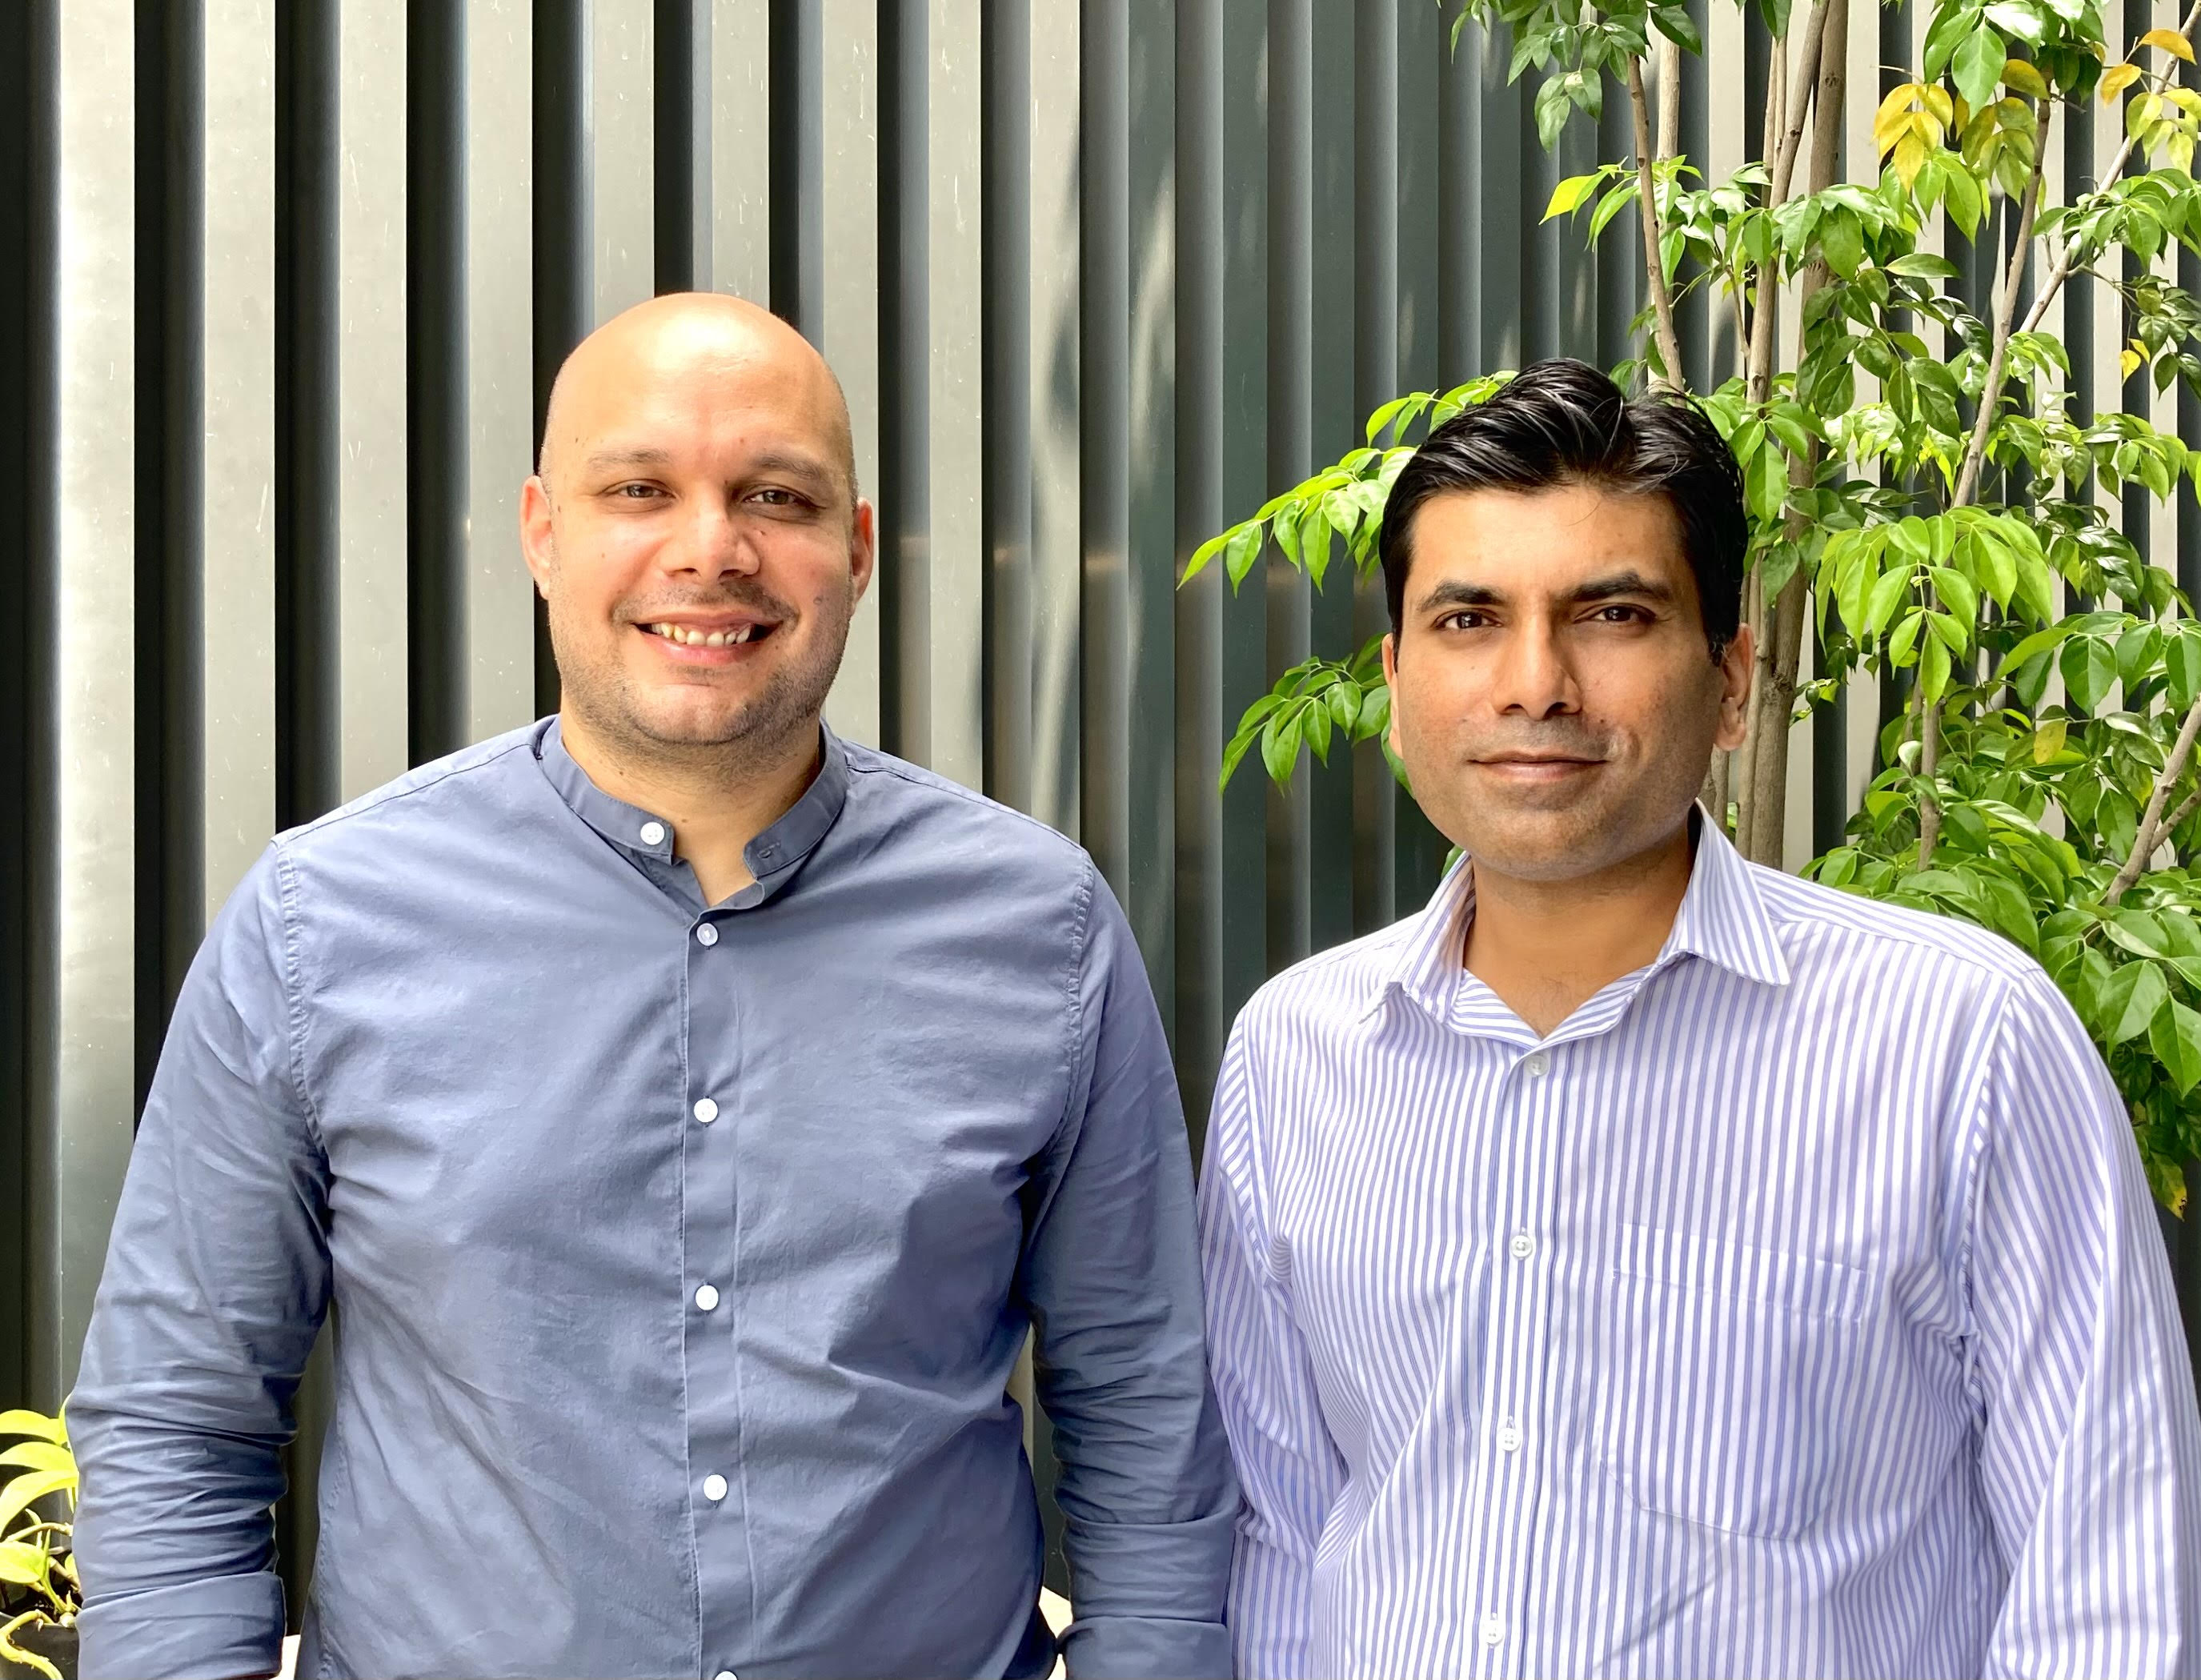 Fewcents co-founders Dushyant Khare and Abhishek Dadoo